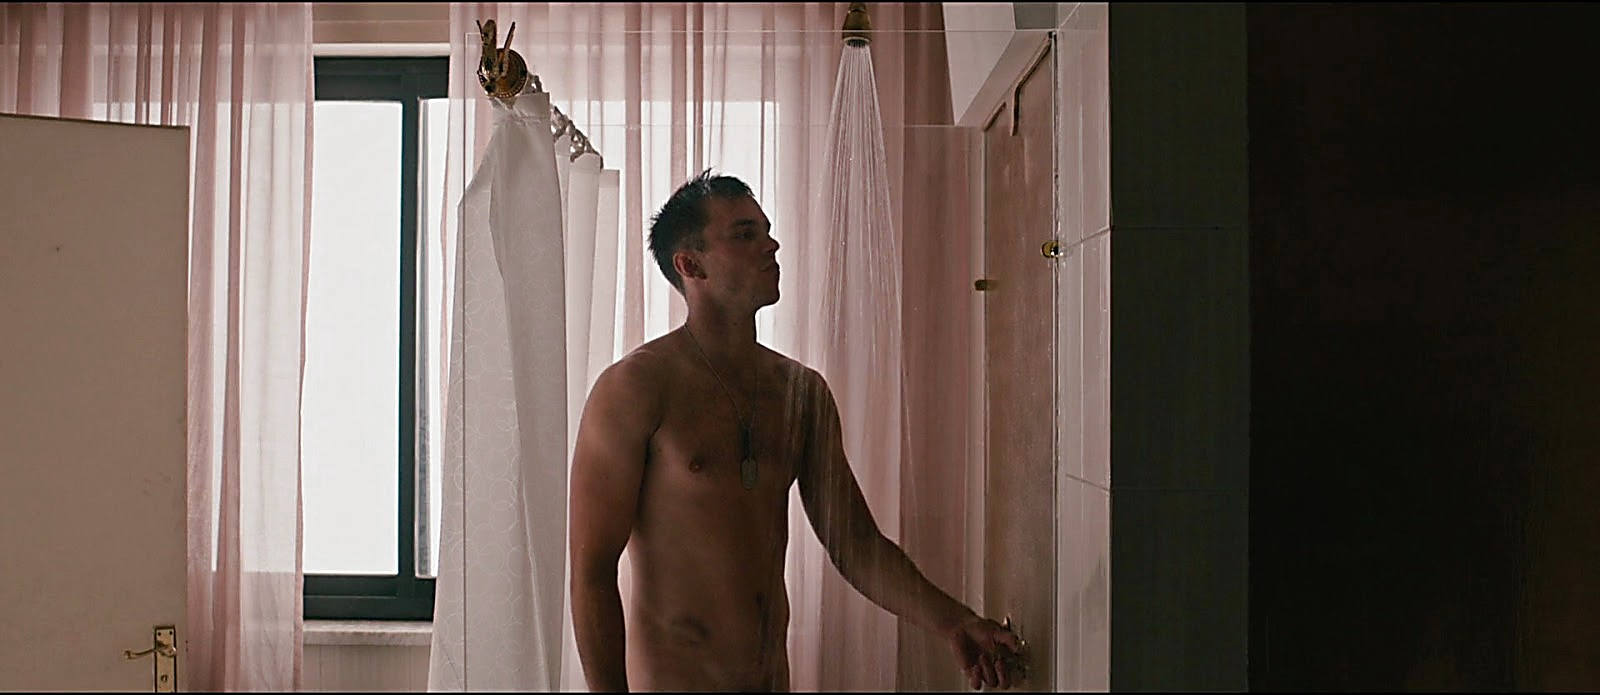 Nicholas Hoult sexy shirtless scene April 22, 2017, 1pm